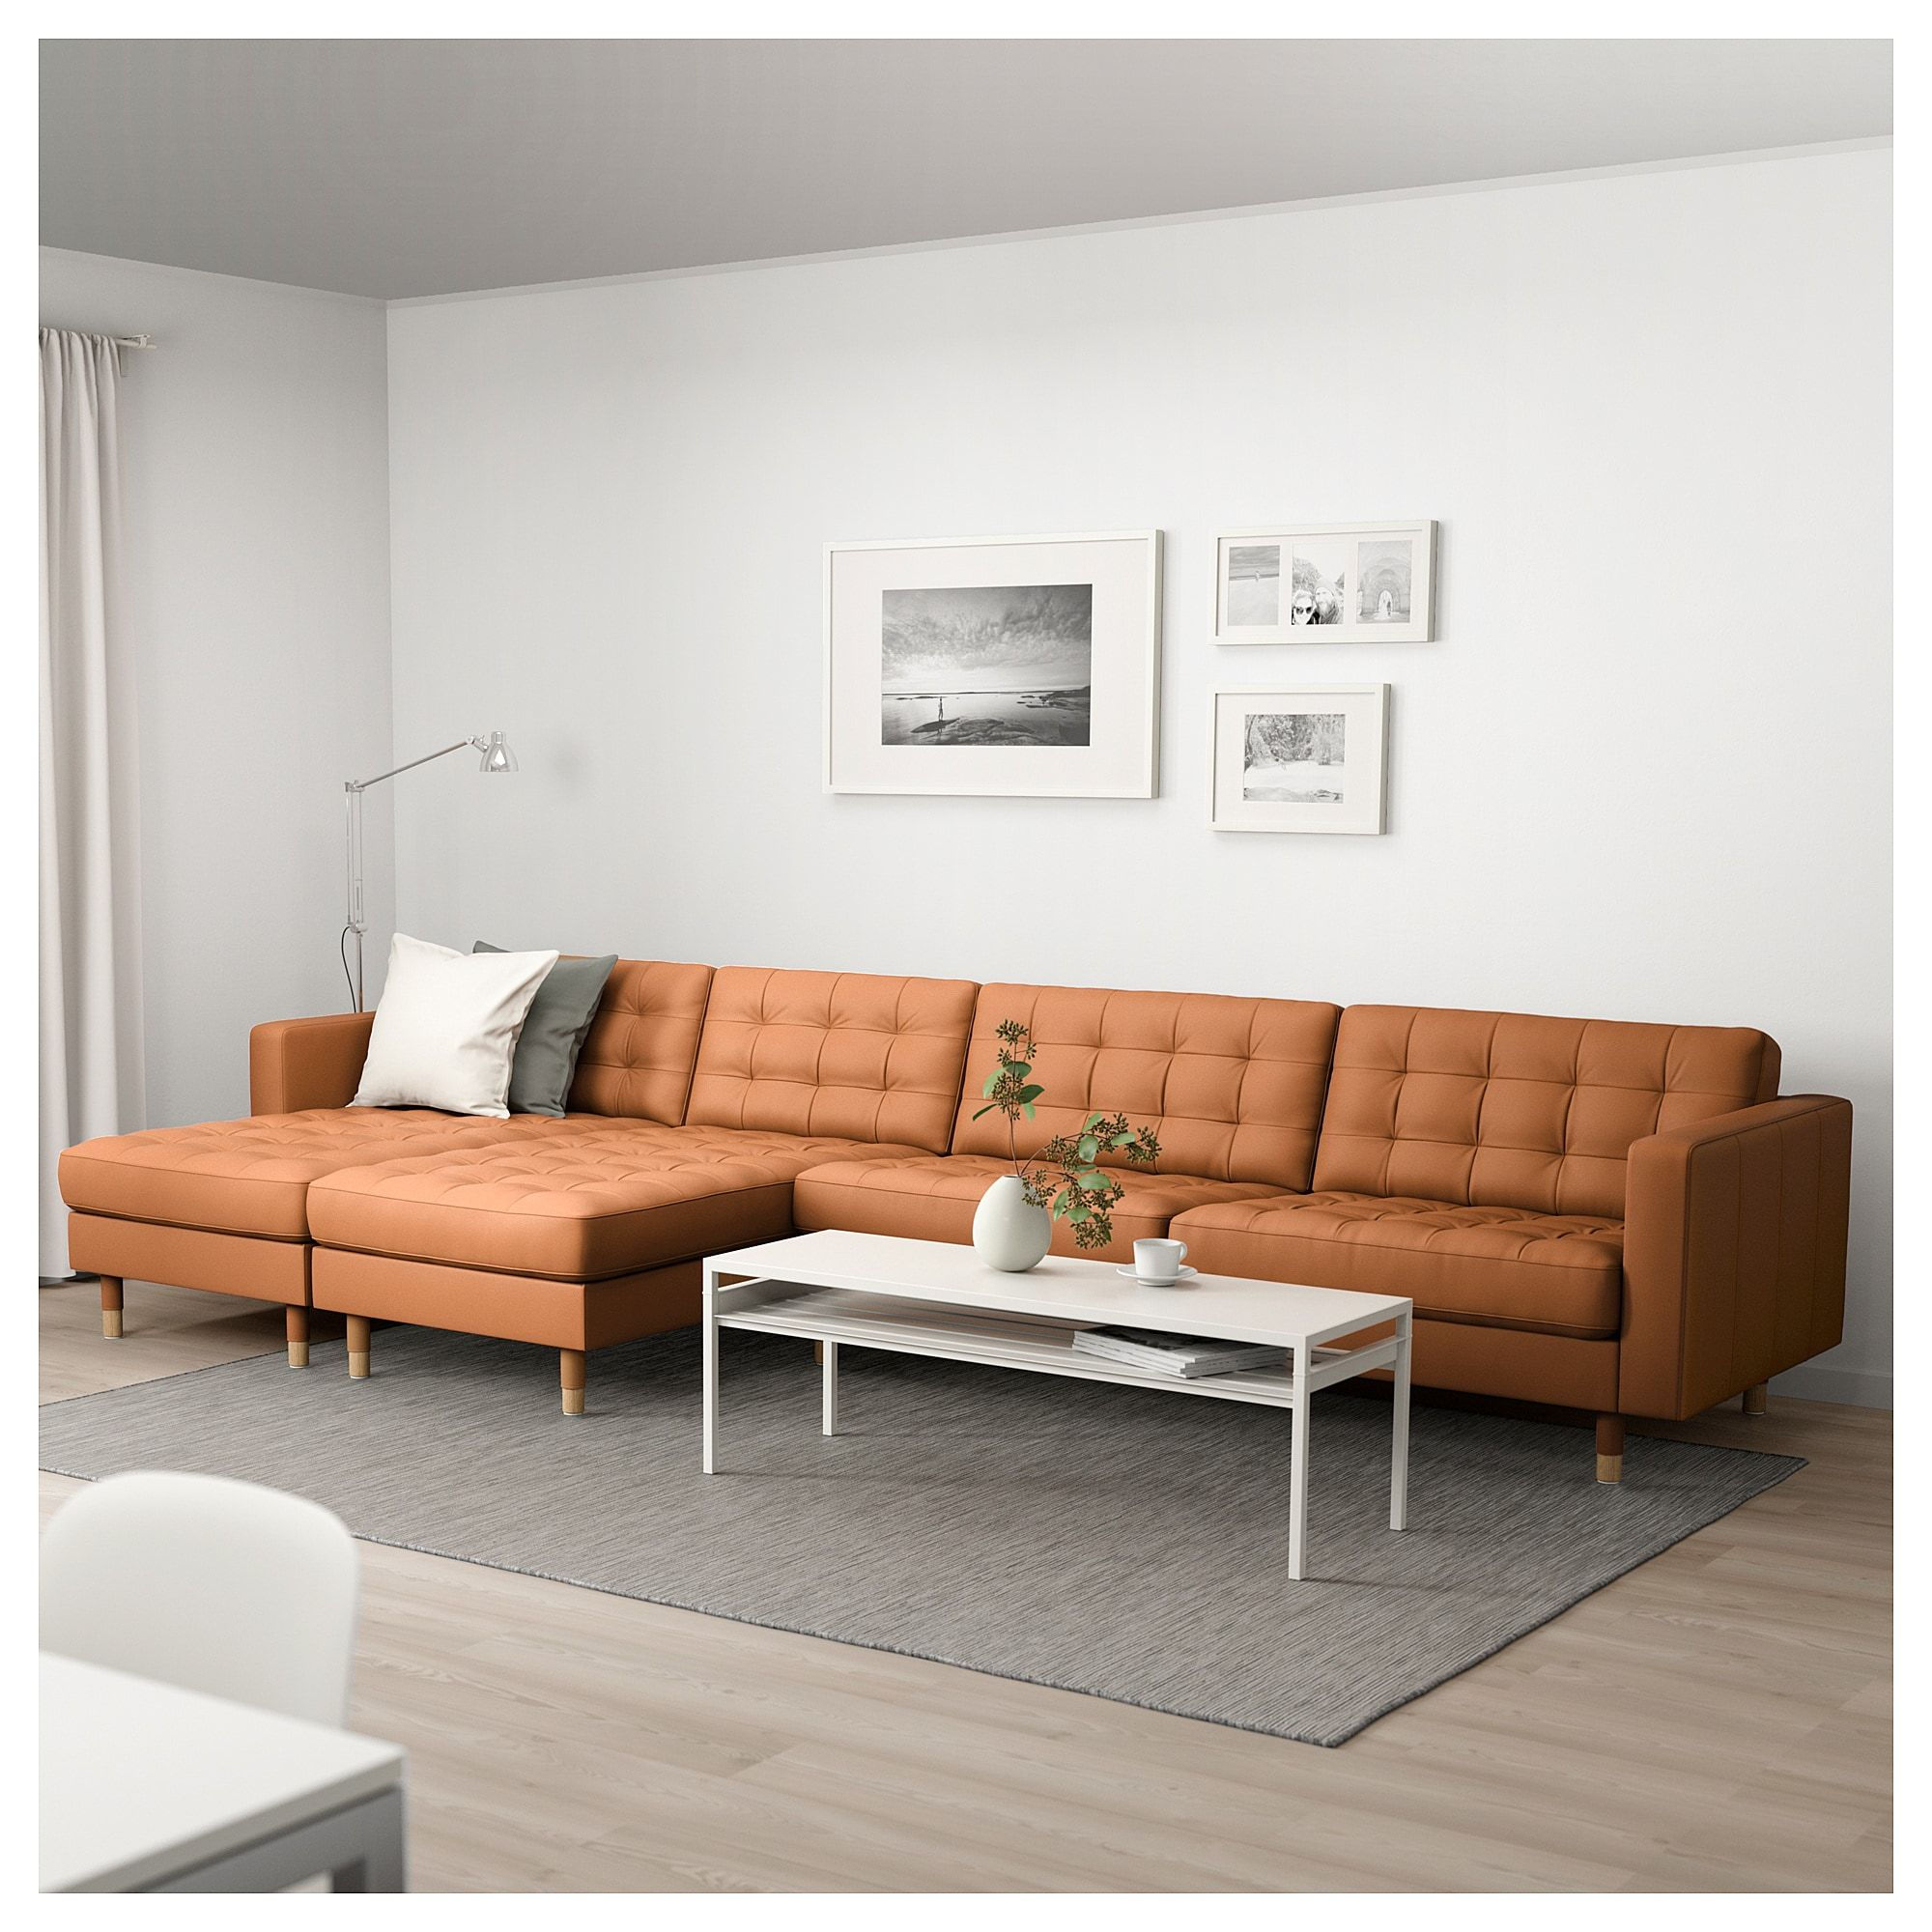 Landskrona Ikea Ecksofa Landskrona Sectional 5 Seat With Chaise Grann Bomstad